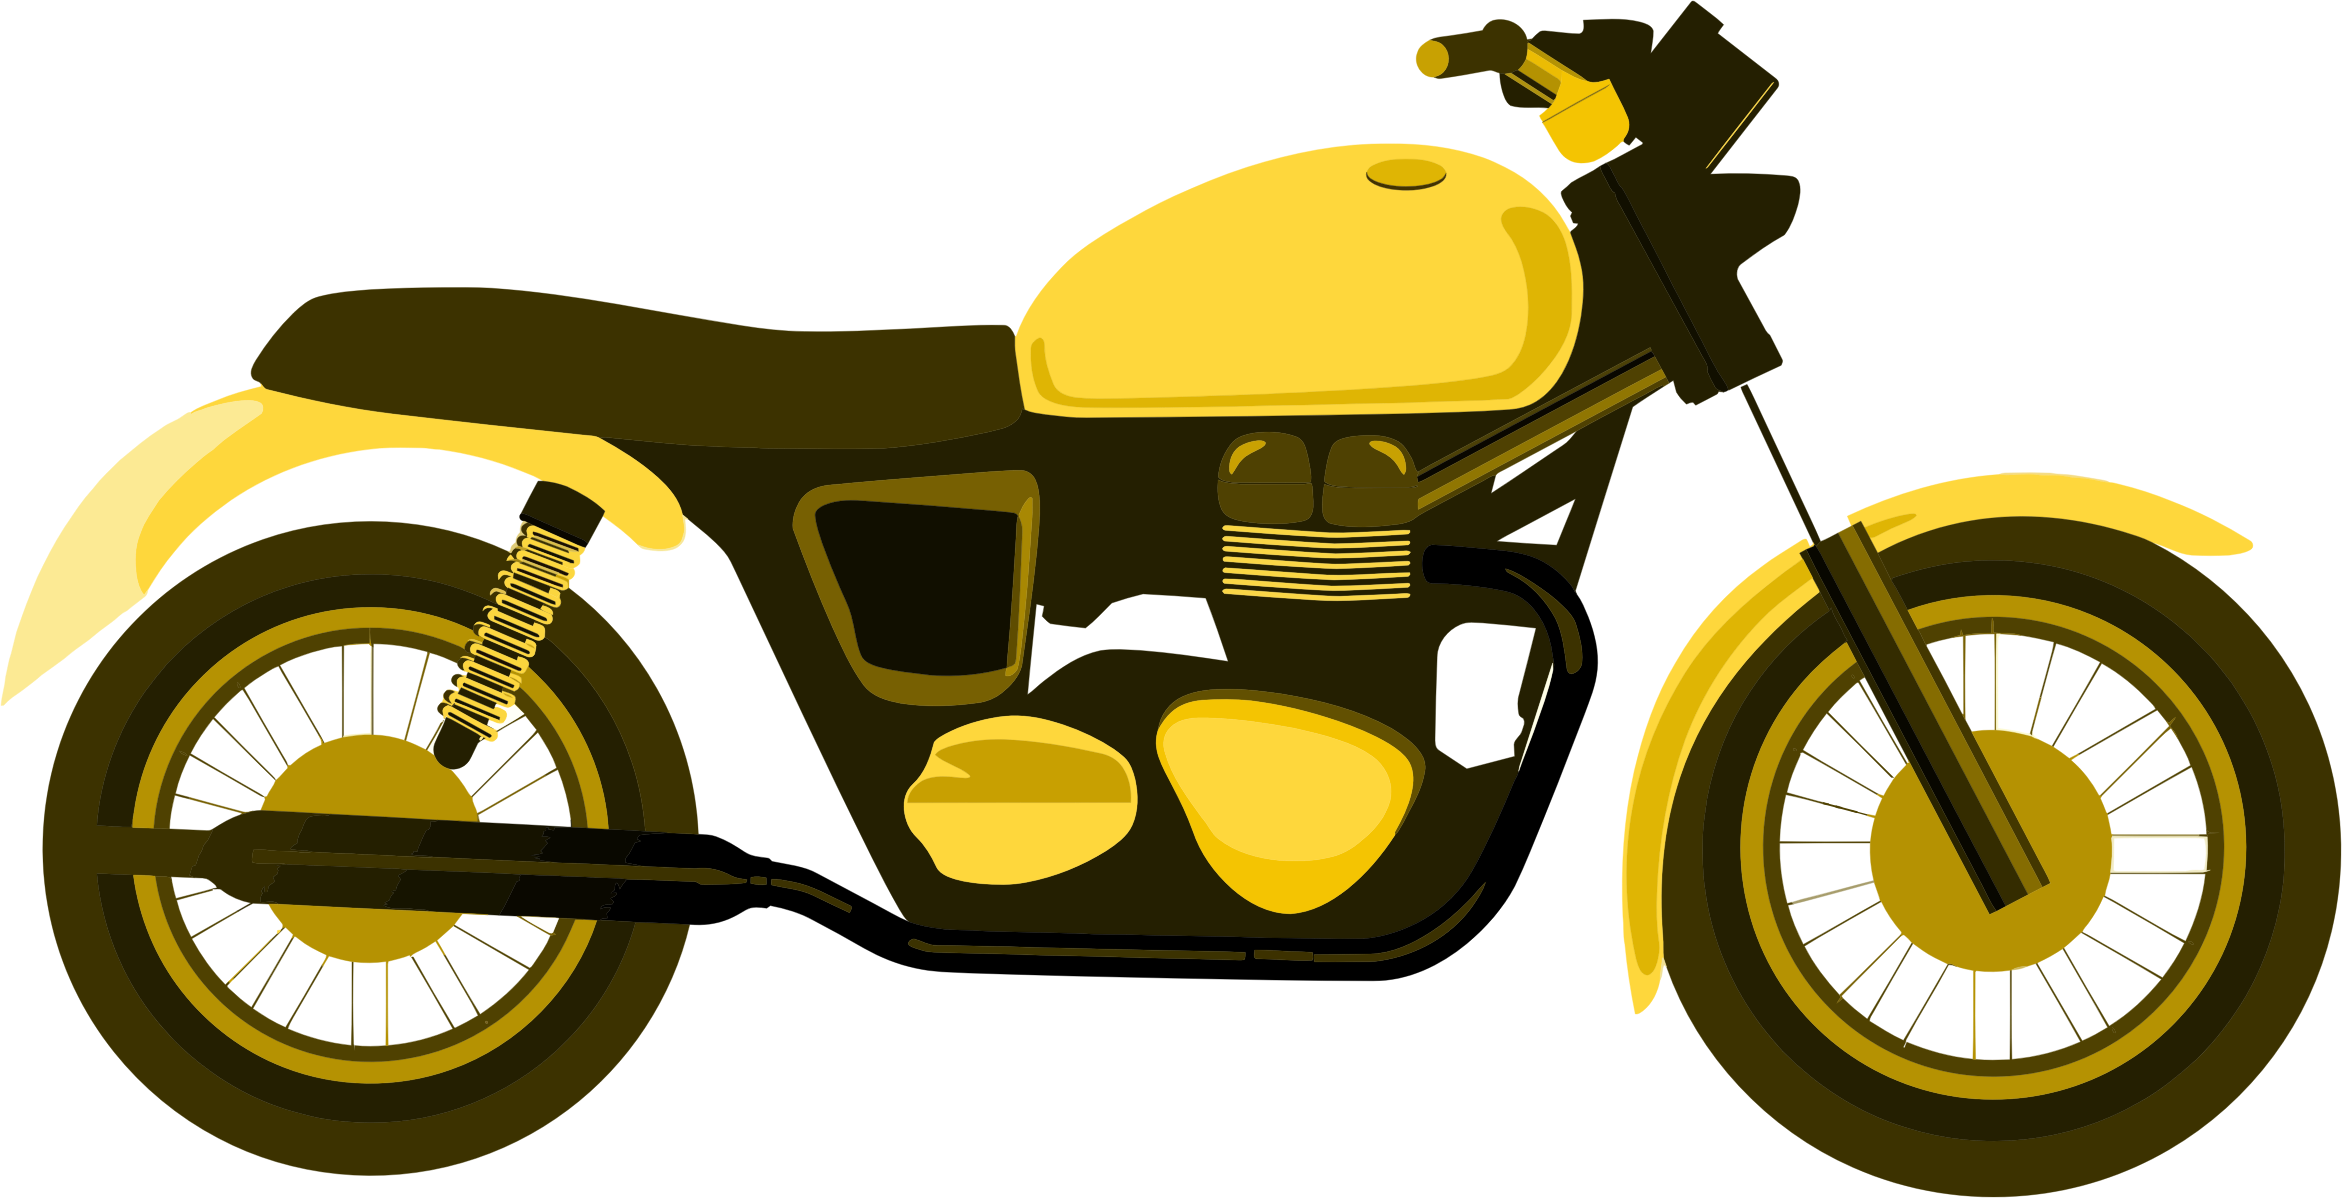 Motorcycle clipart svg. Yellow big image png